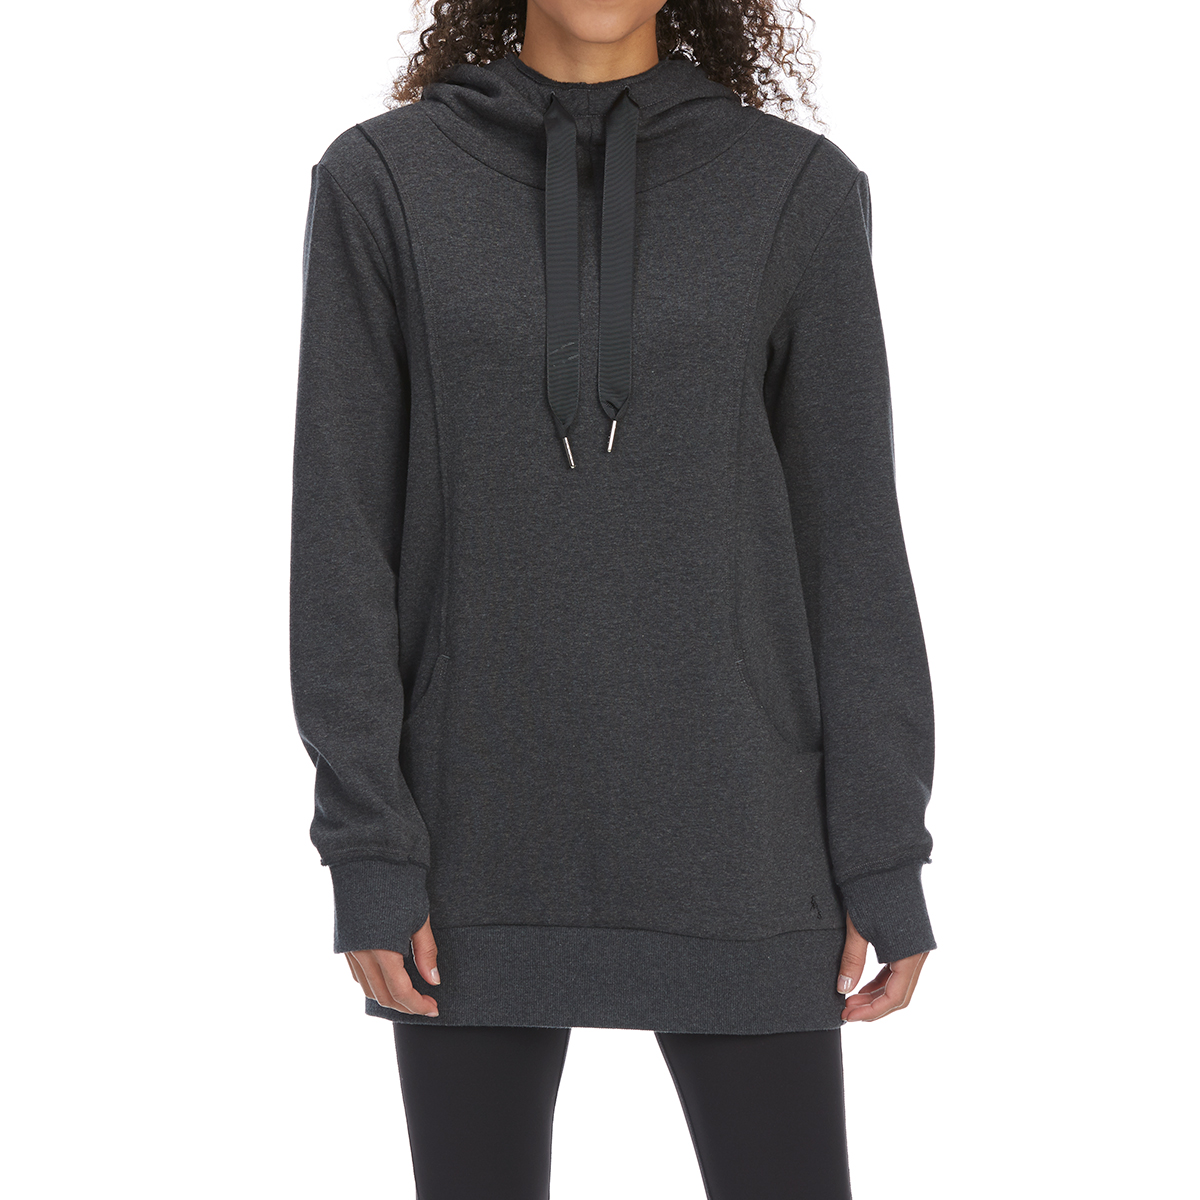 Ems Women's Canyon Pullover Hoodie - Black, XL